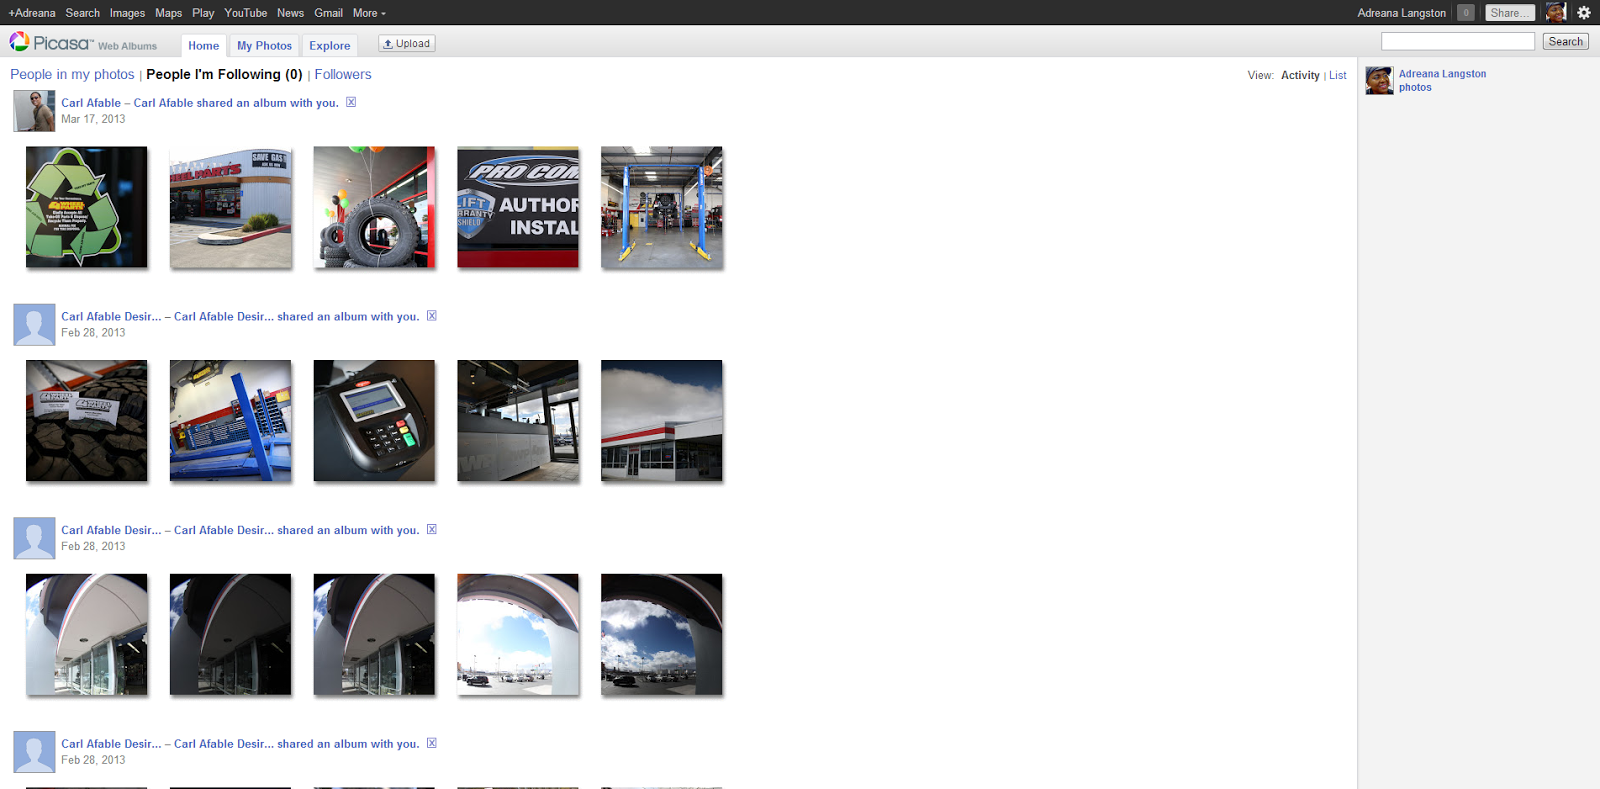 a google trusted photograher shared an album with me but it is not